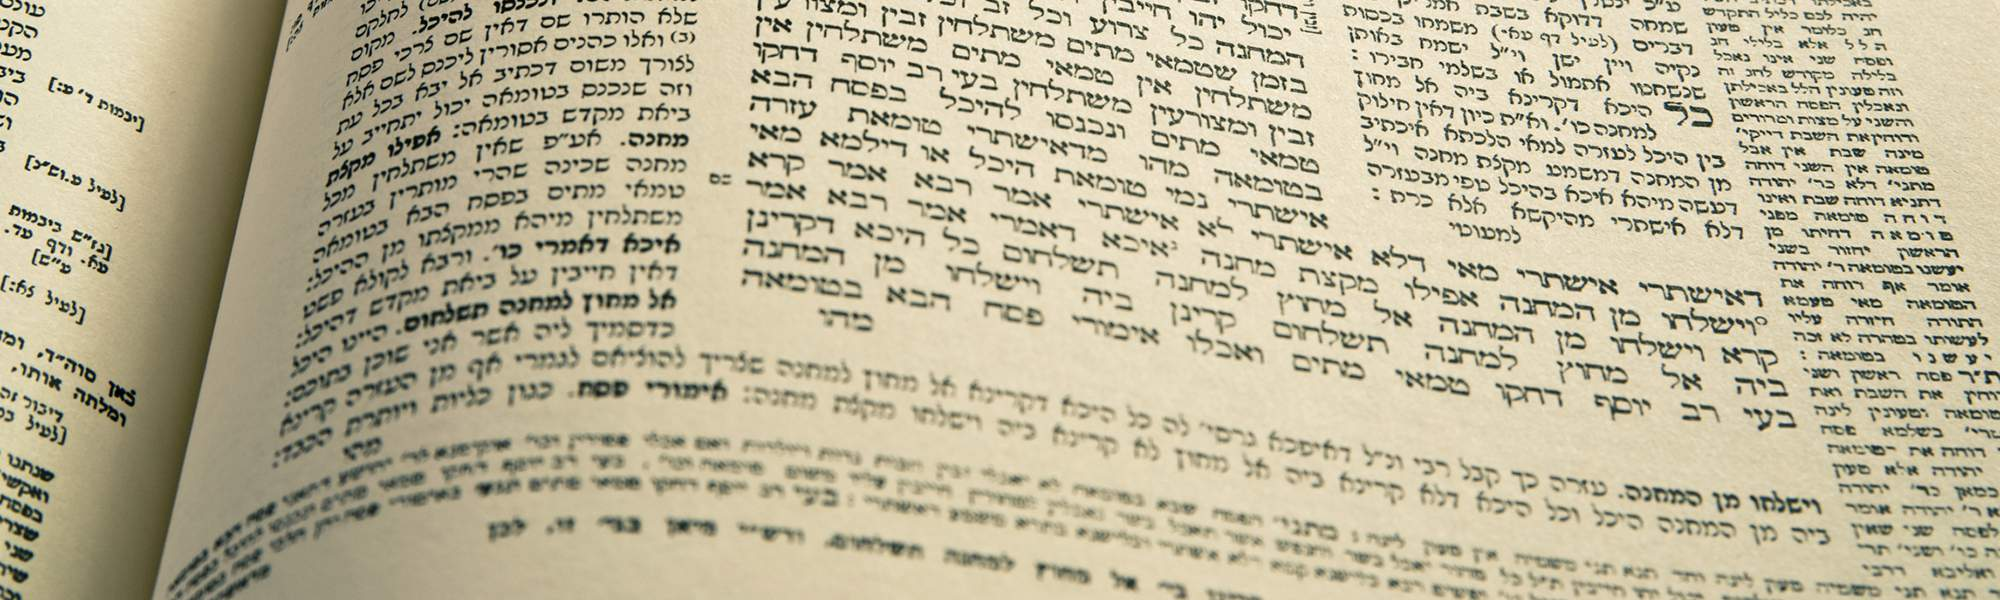 Programs - Yeshivat Chovevei Torah, Setting the standard in rabbinic education